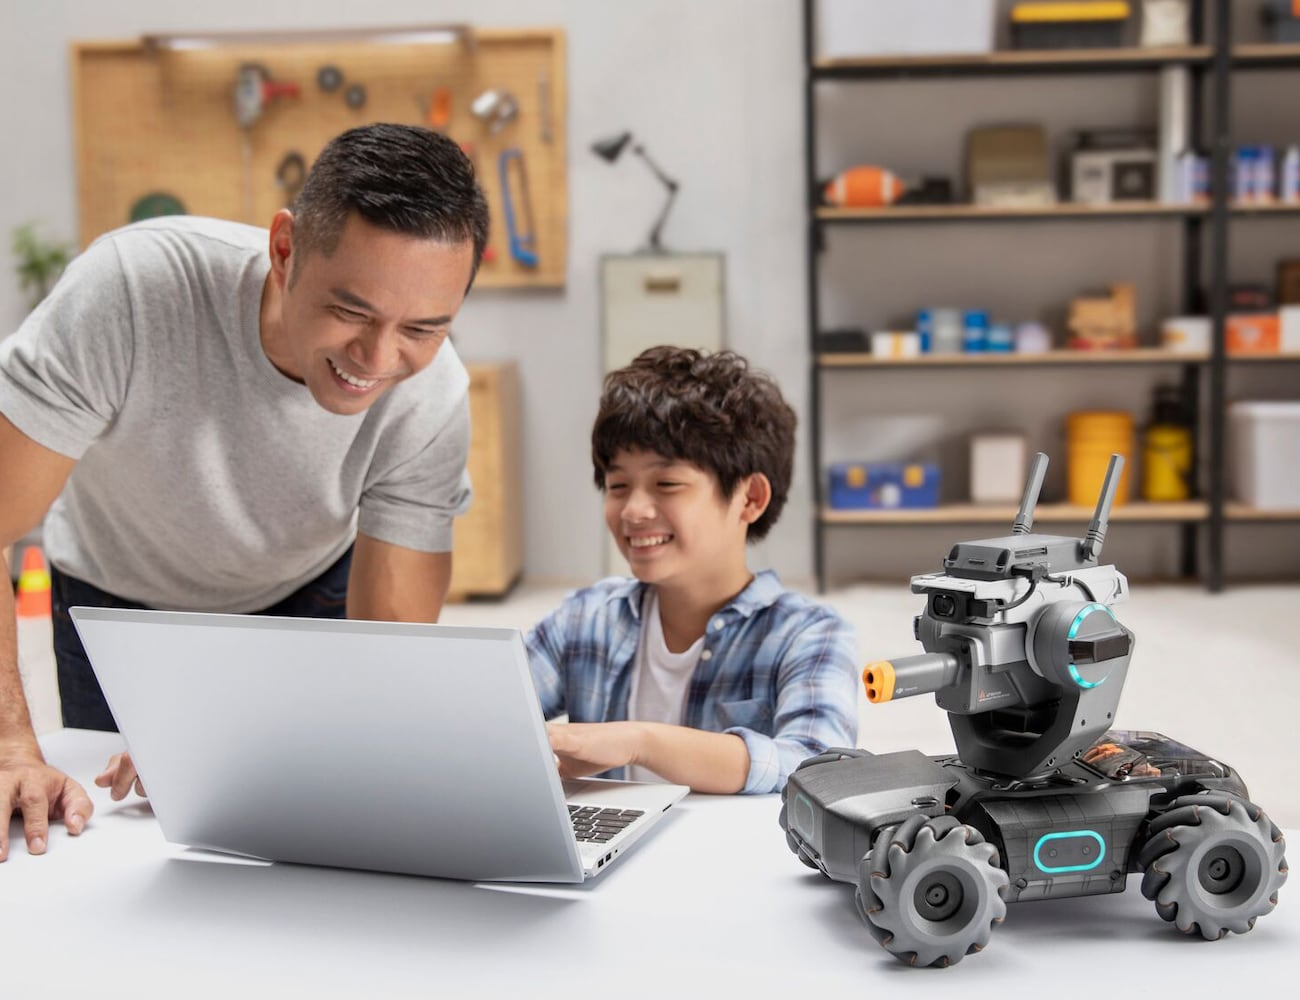 DJI RoboMaster S1 Educational Robot teaches kids how to code